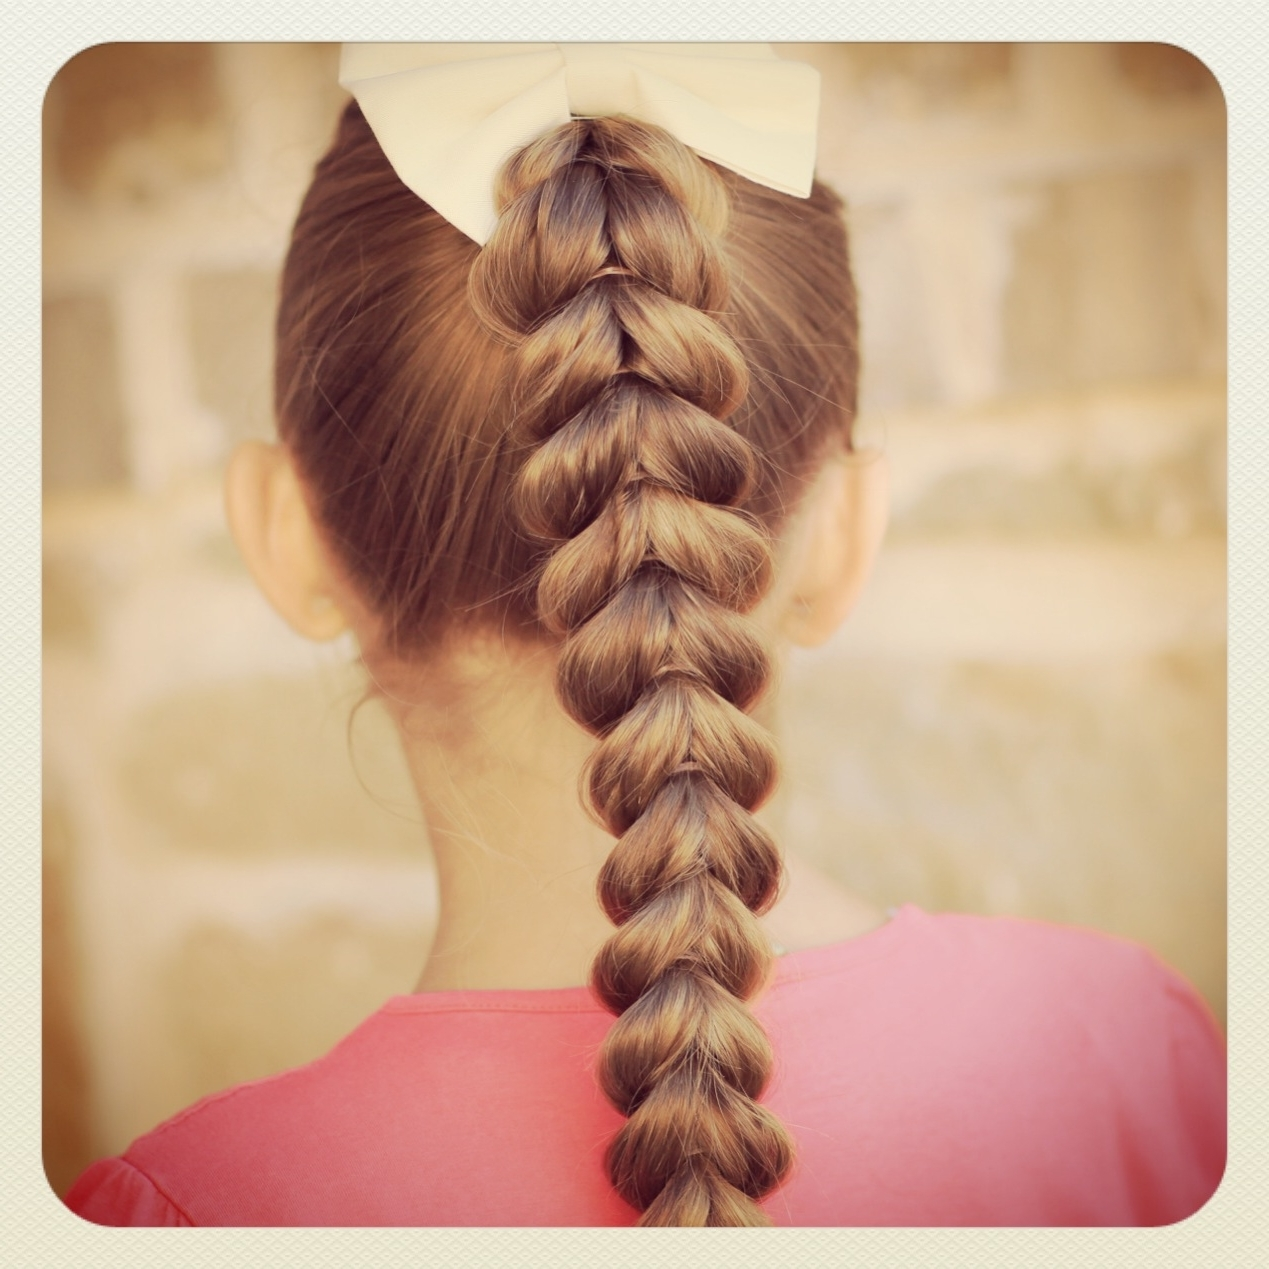 Cute Girls Hairstyles Regarding Trendy Simple French Braids For Long Hair (View 8 of 15)